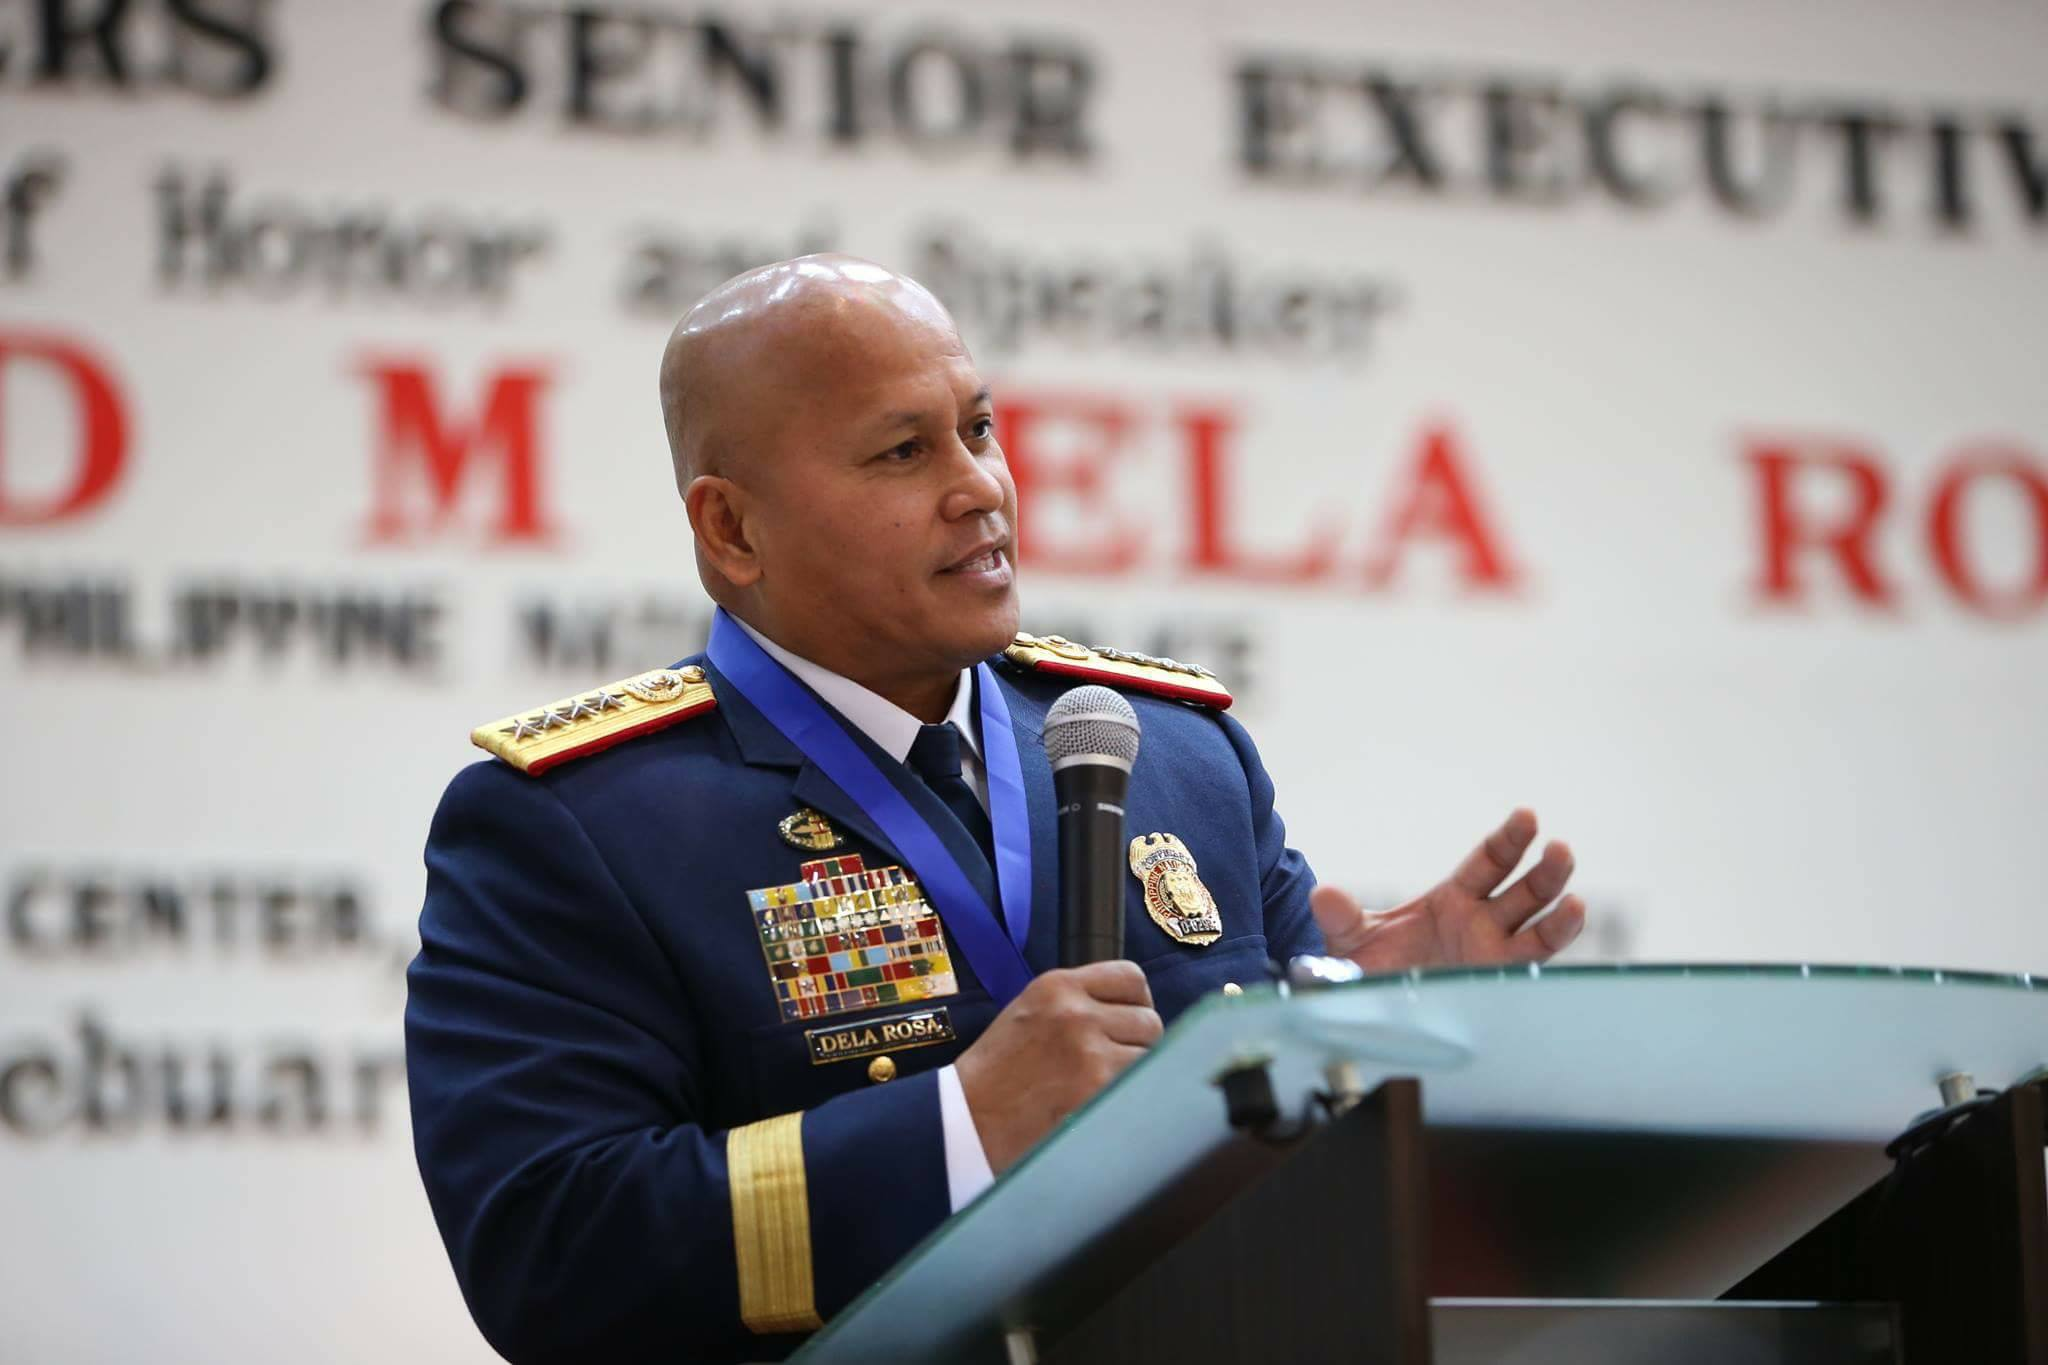 Dela Rosa made the offer a day after the Department of Justice (DOJ) filed charges against De Lima for violation of Republic Act No. 9165. (Photo: Philippine National Police/Facebook)